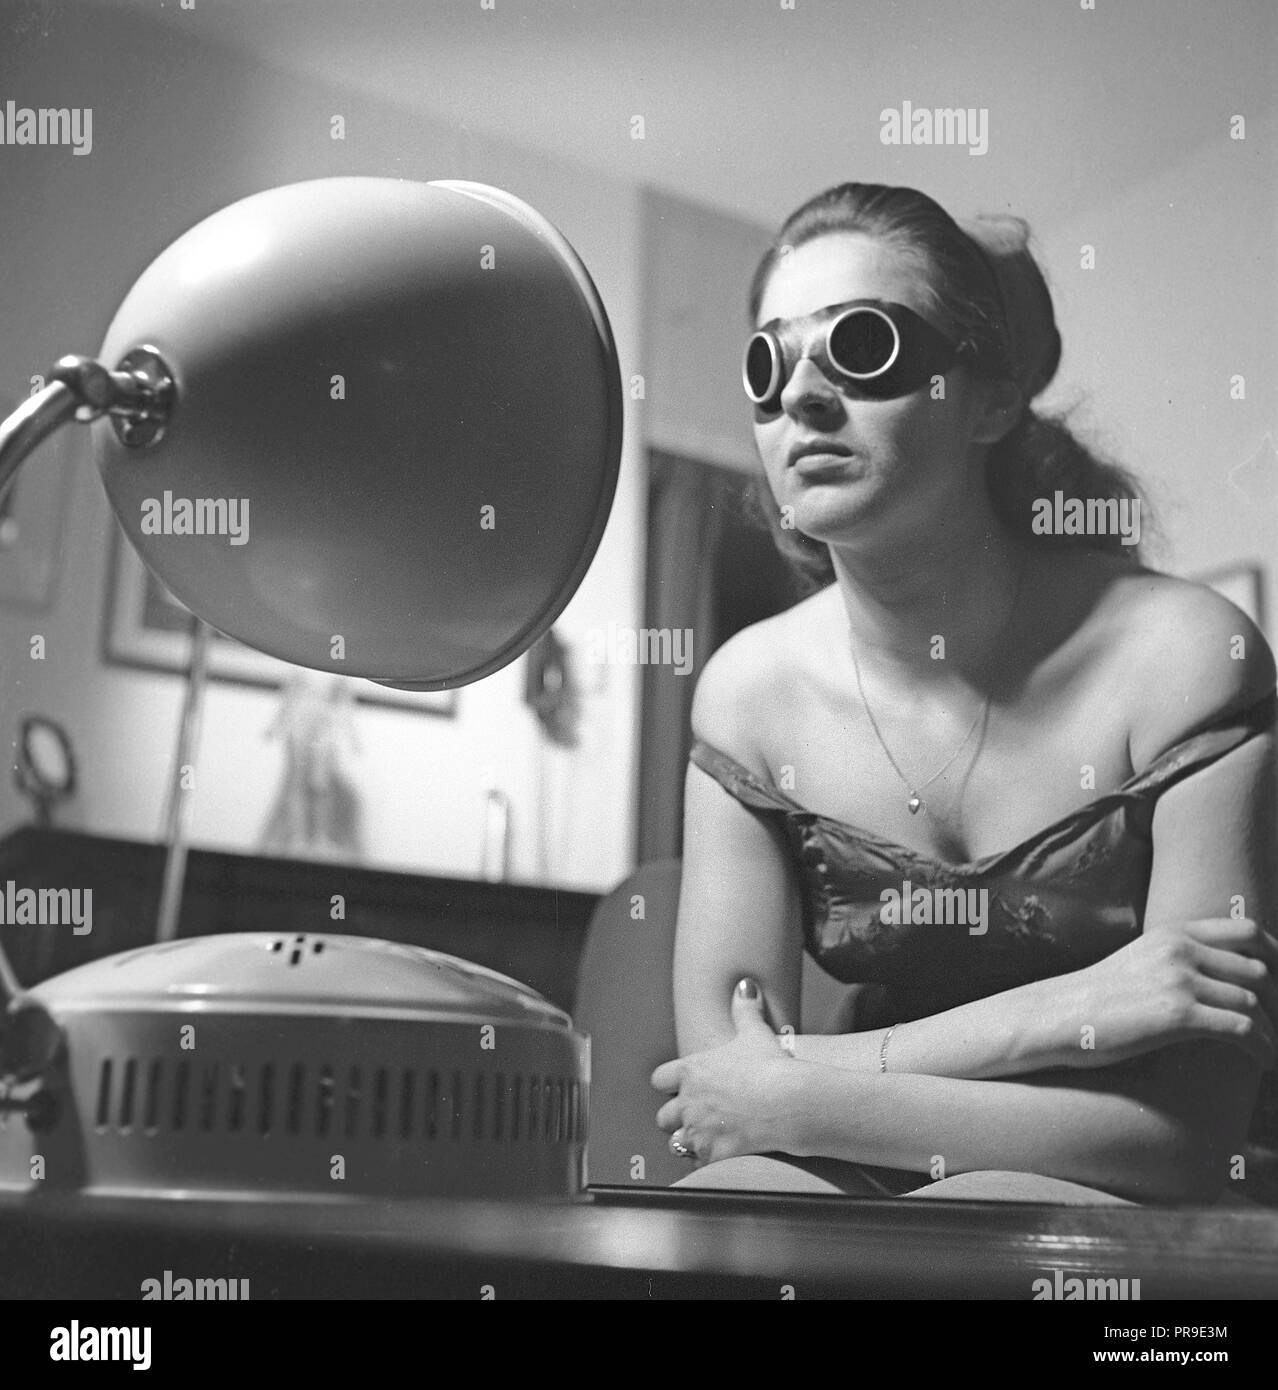 Beauty care in the 1940s. A young woman is getting a tan in front of a sunlamp. The artificial sunlight from the home tanning equipments like this sunlamp gave a tan and was sometimes a treatment for illnesses. You would have to wear protective sunglasses when using it.  Sweden 1940s.  Photo Kristoffersson Y81-3 - Stock Image